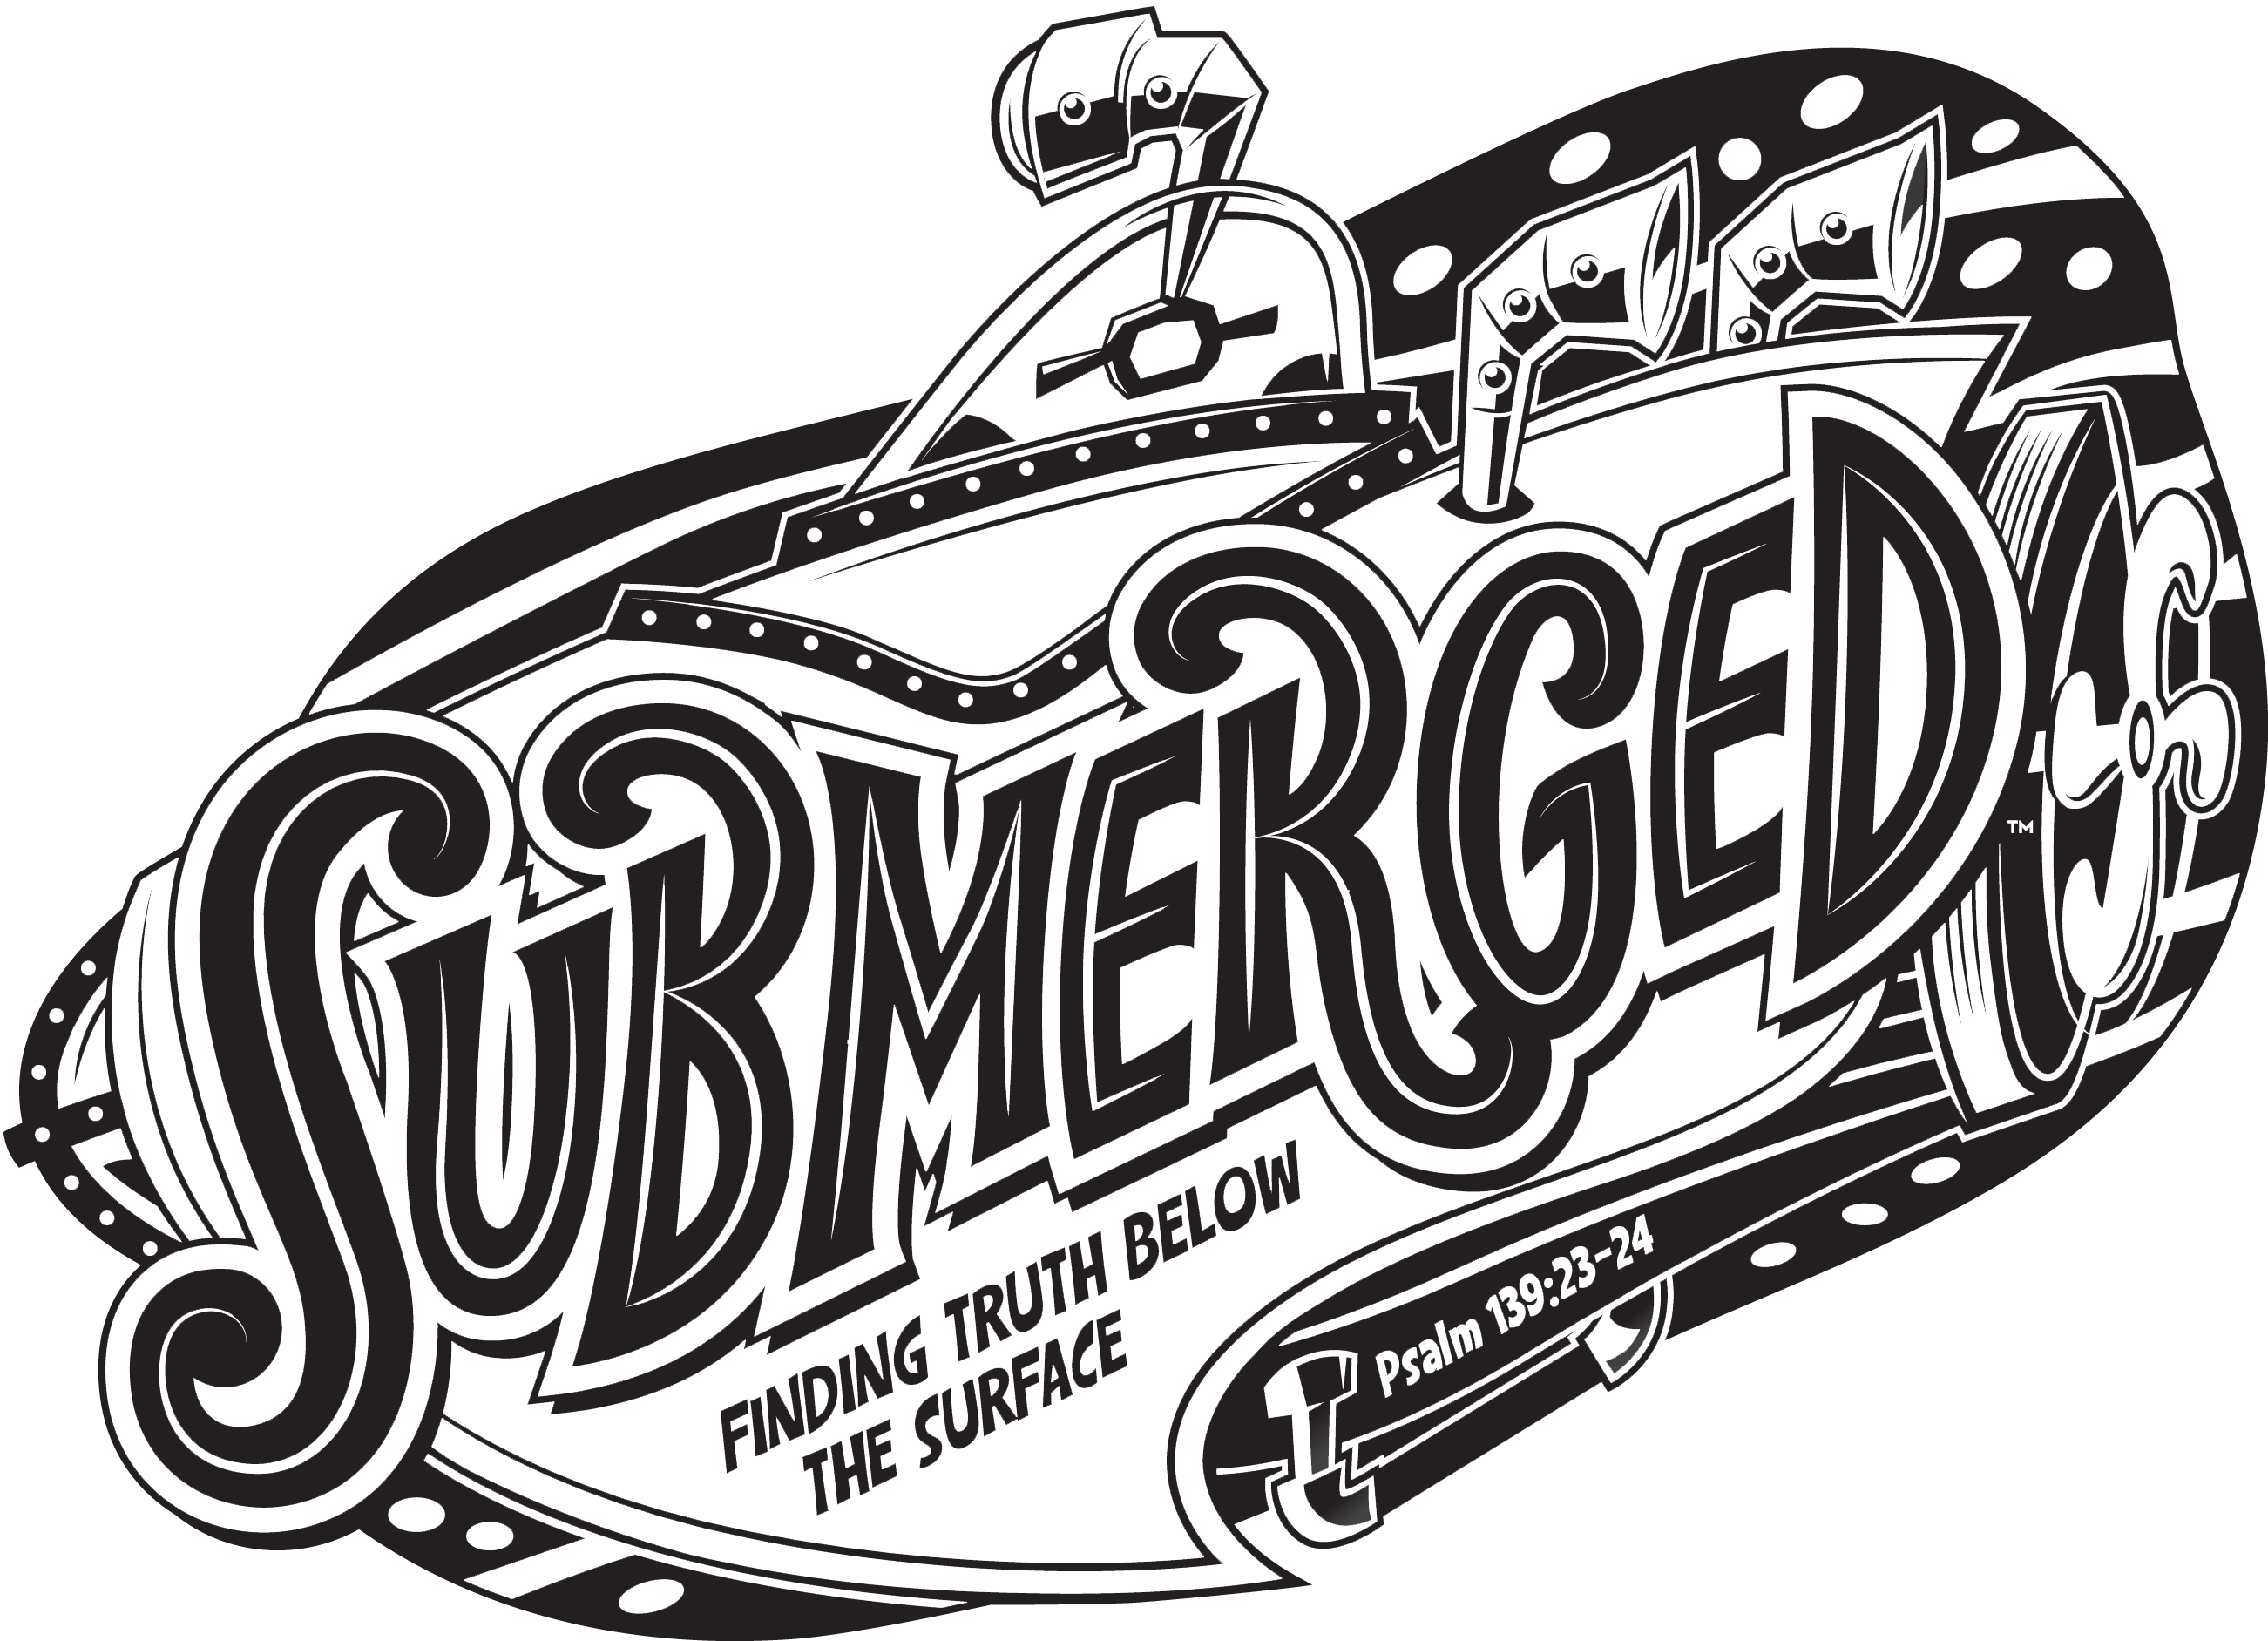 Bible school submerged clipart.